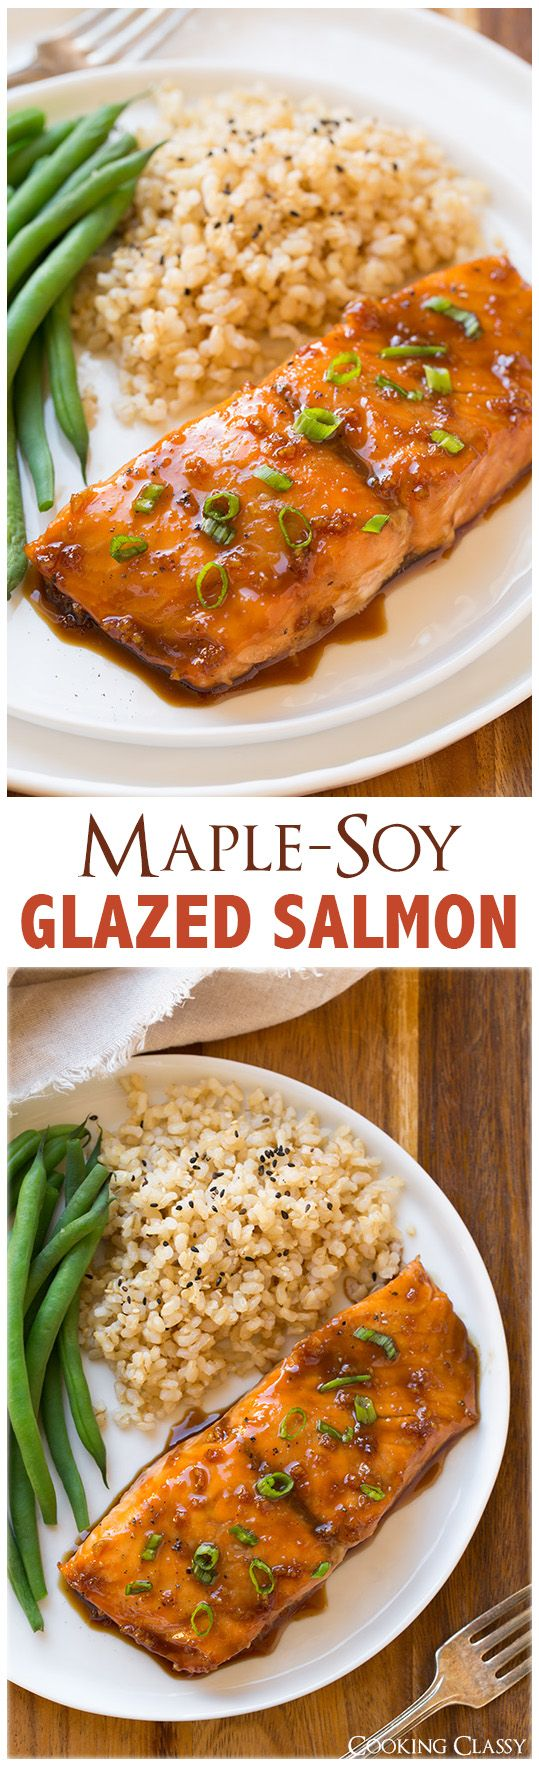 Maple-Soy Glazed Salmon - only four ingredients:) Absolutely divine:)